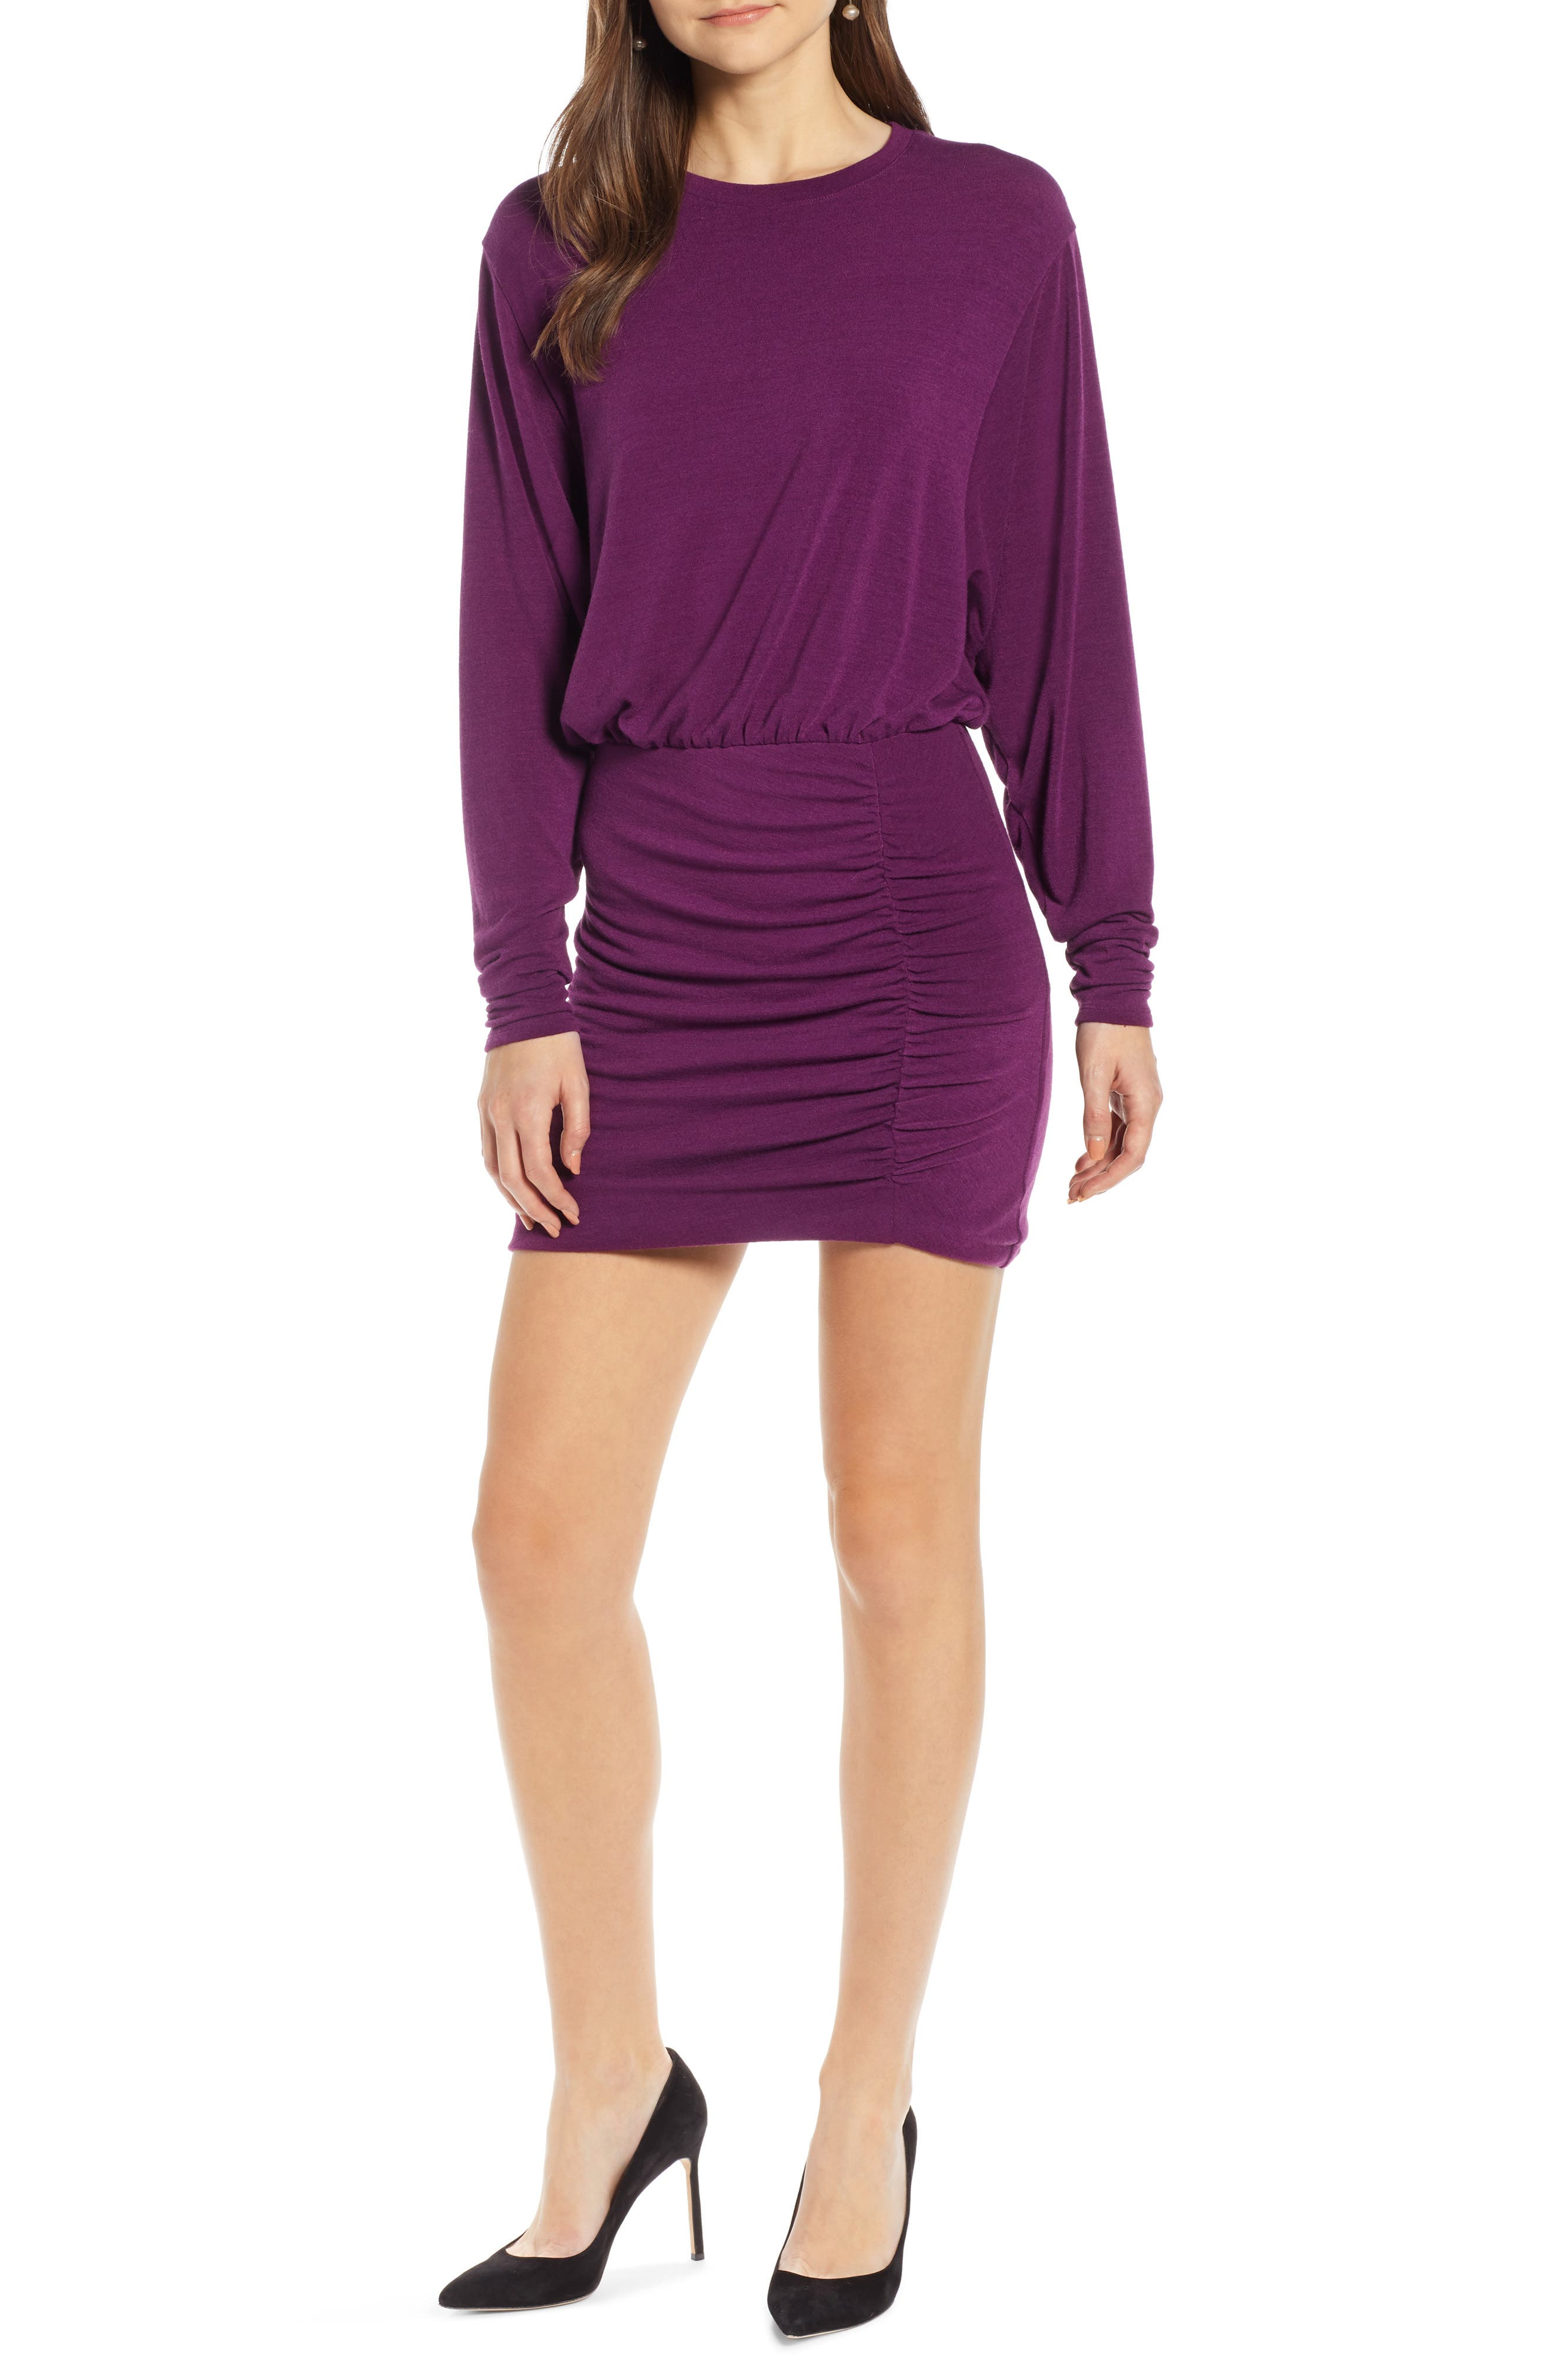 Ruched Detail Dress,                             Main thumbnail 1, color,                             PURPLE IMPERIAL